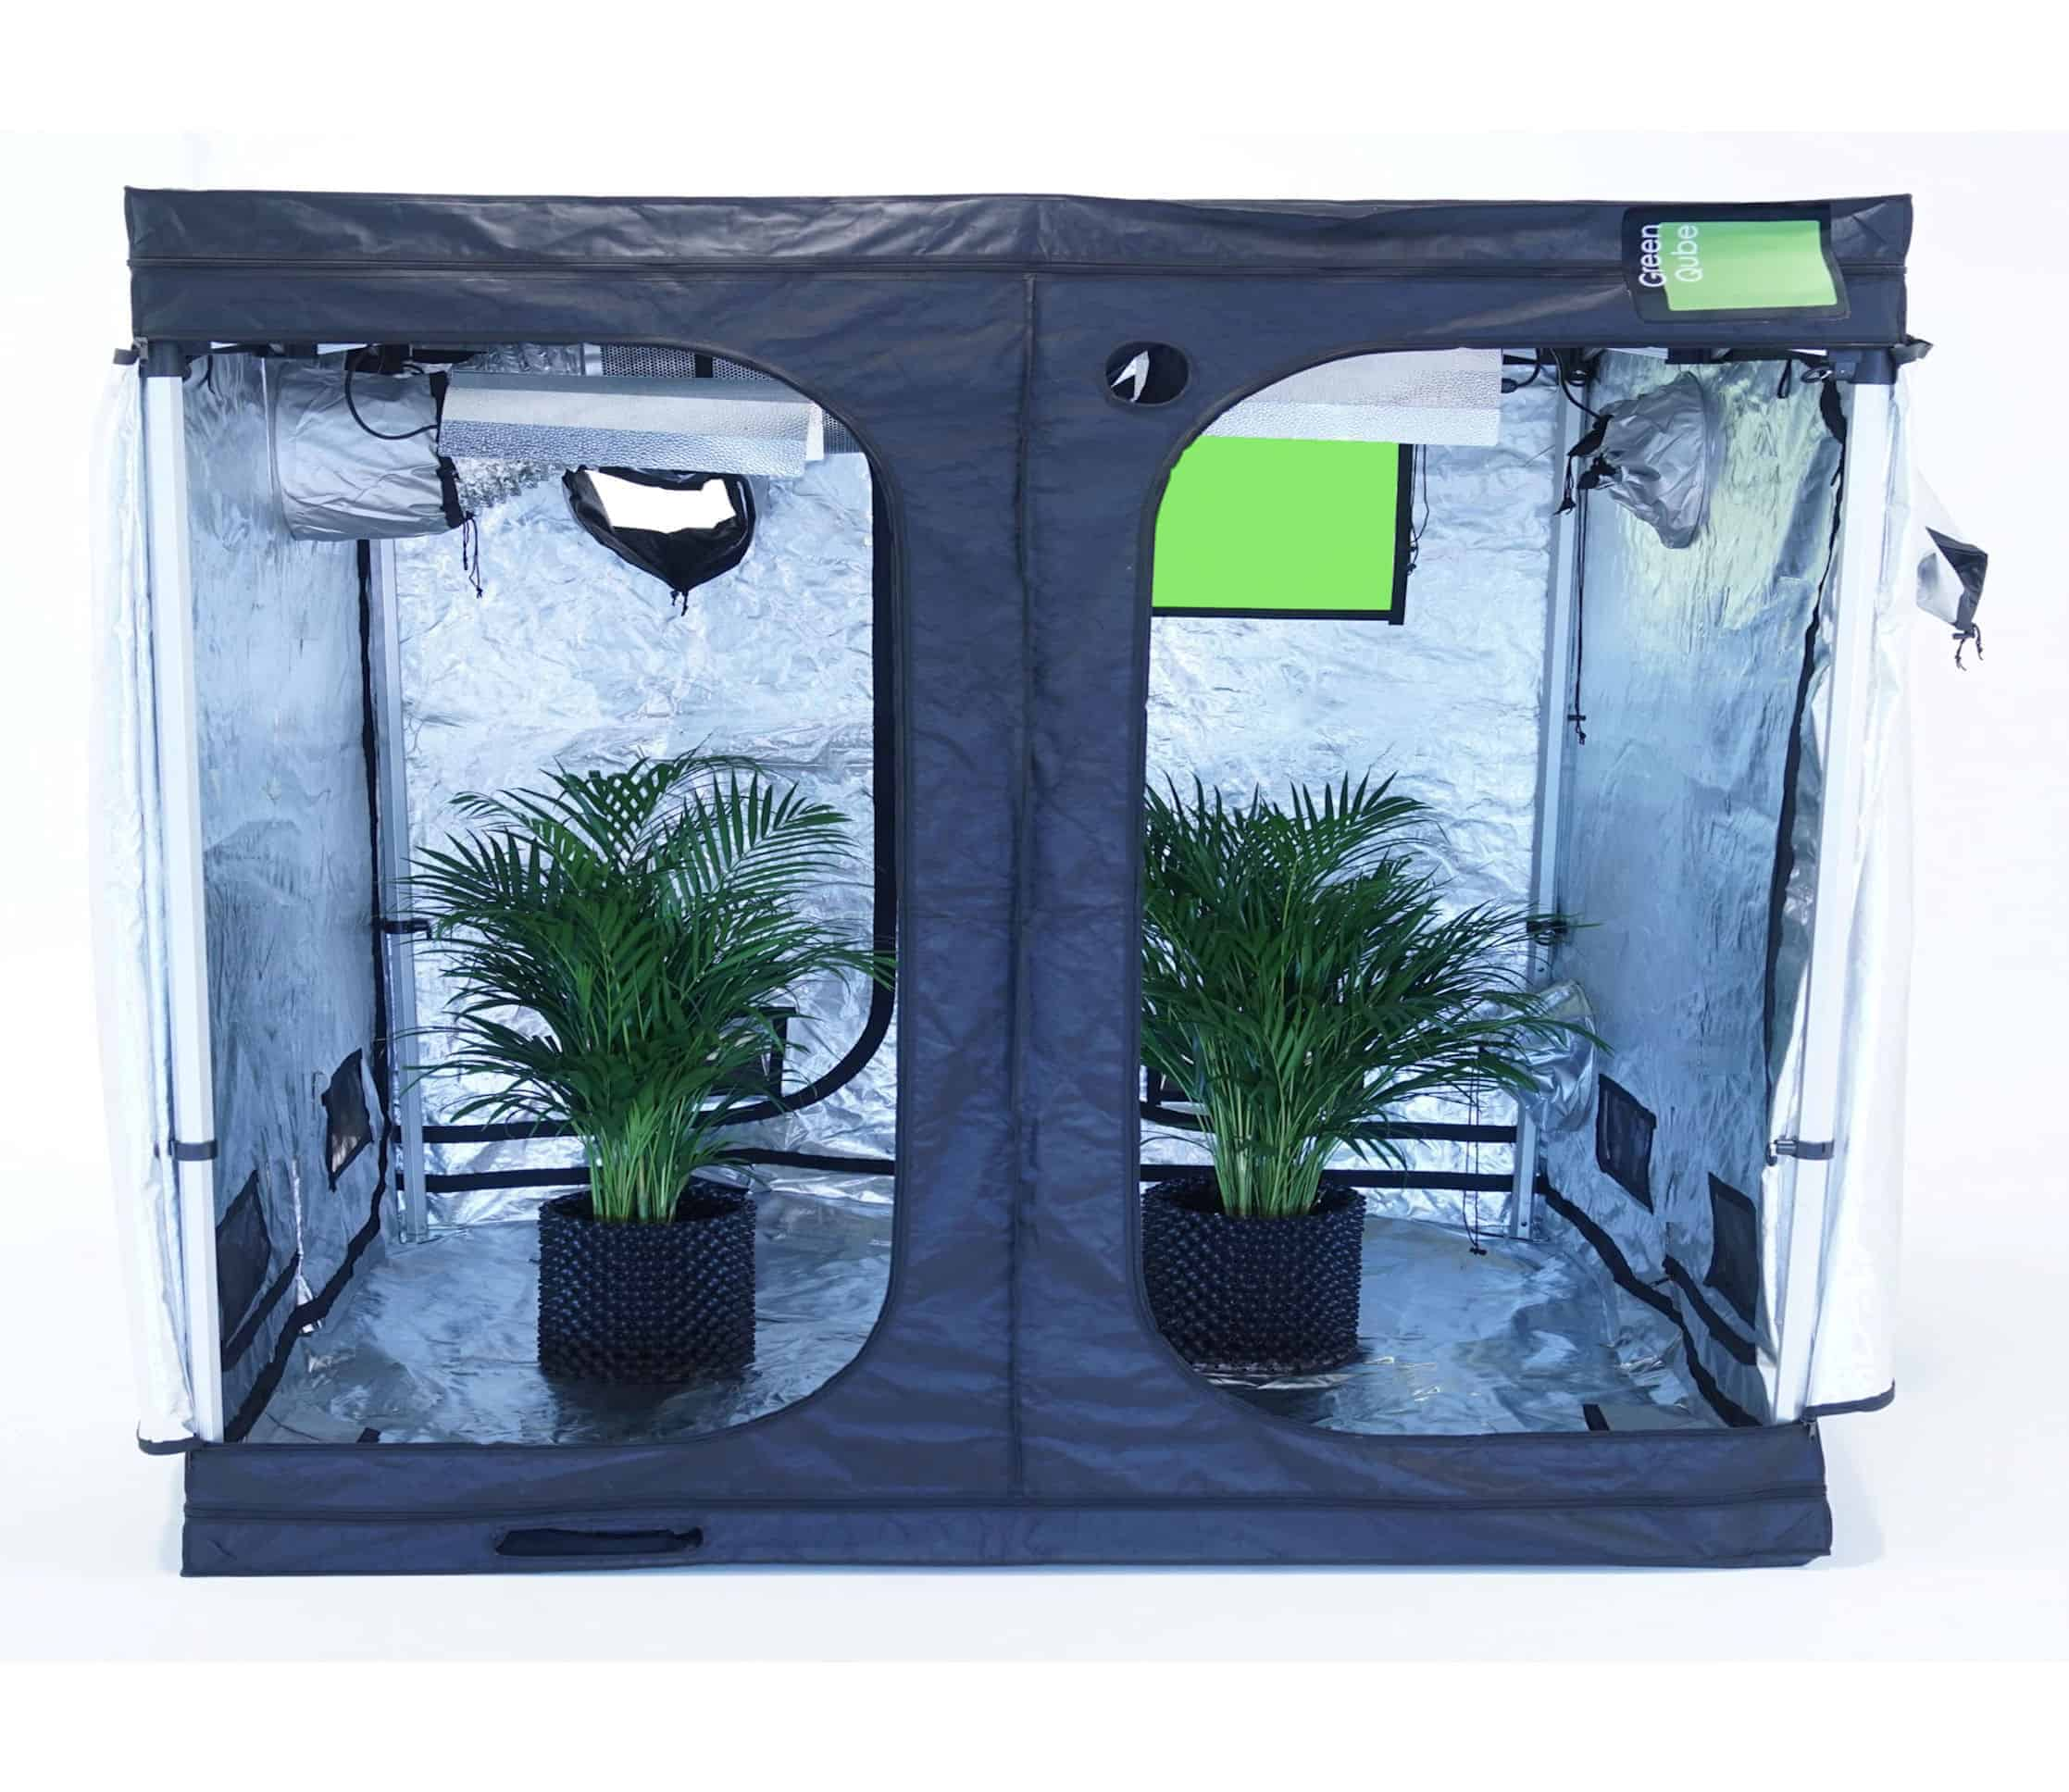 Image result for Grow Tent?